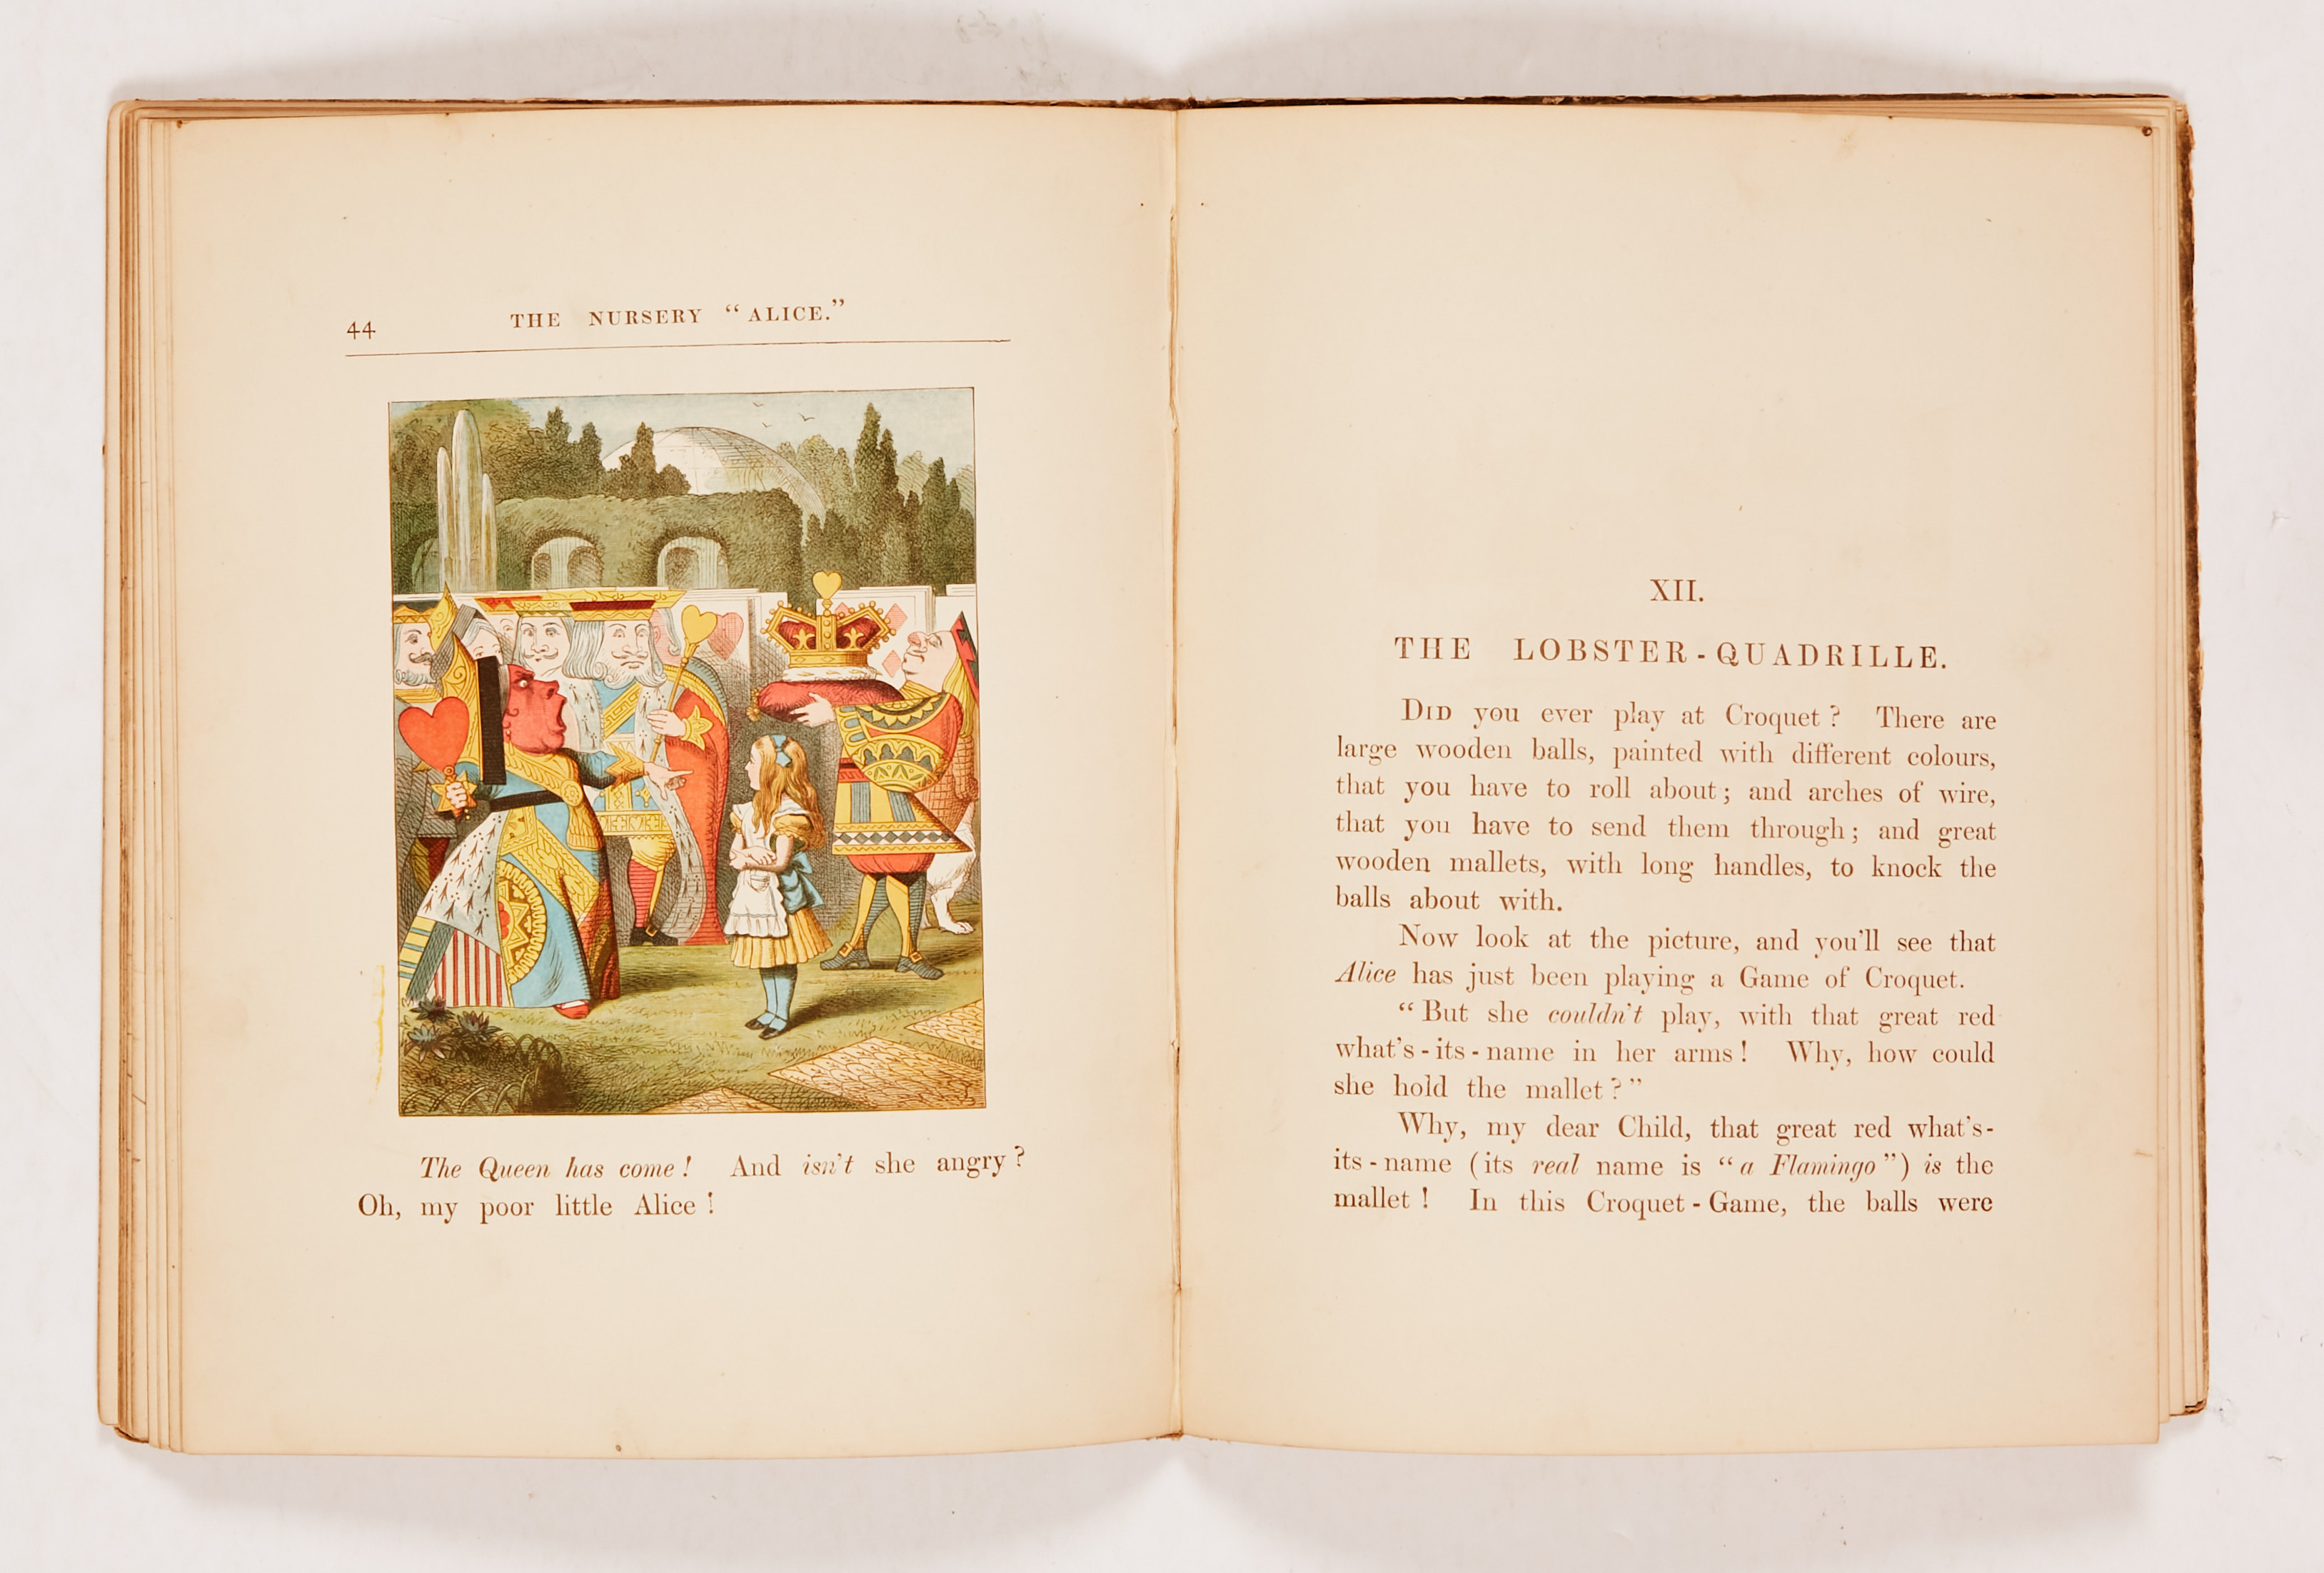 """The Nursery """"Alice"""" (1890 MacMillan and Co). Second edition containing 20 coloured enlargements from - Image 4 of 4"""